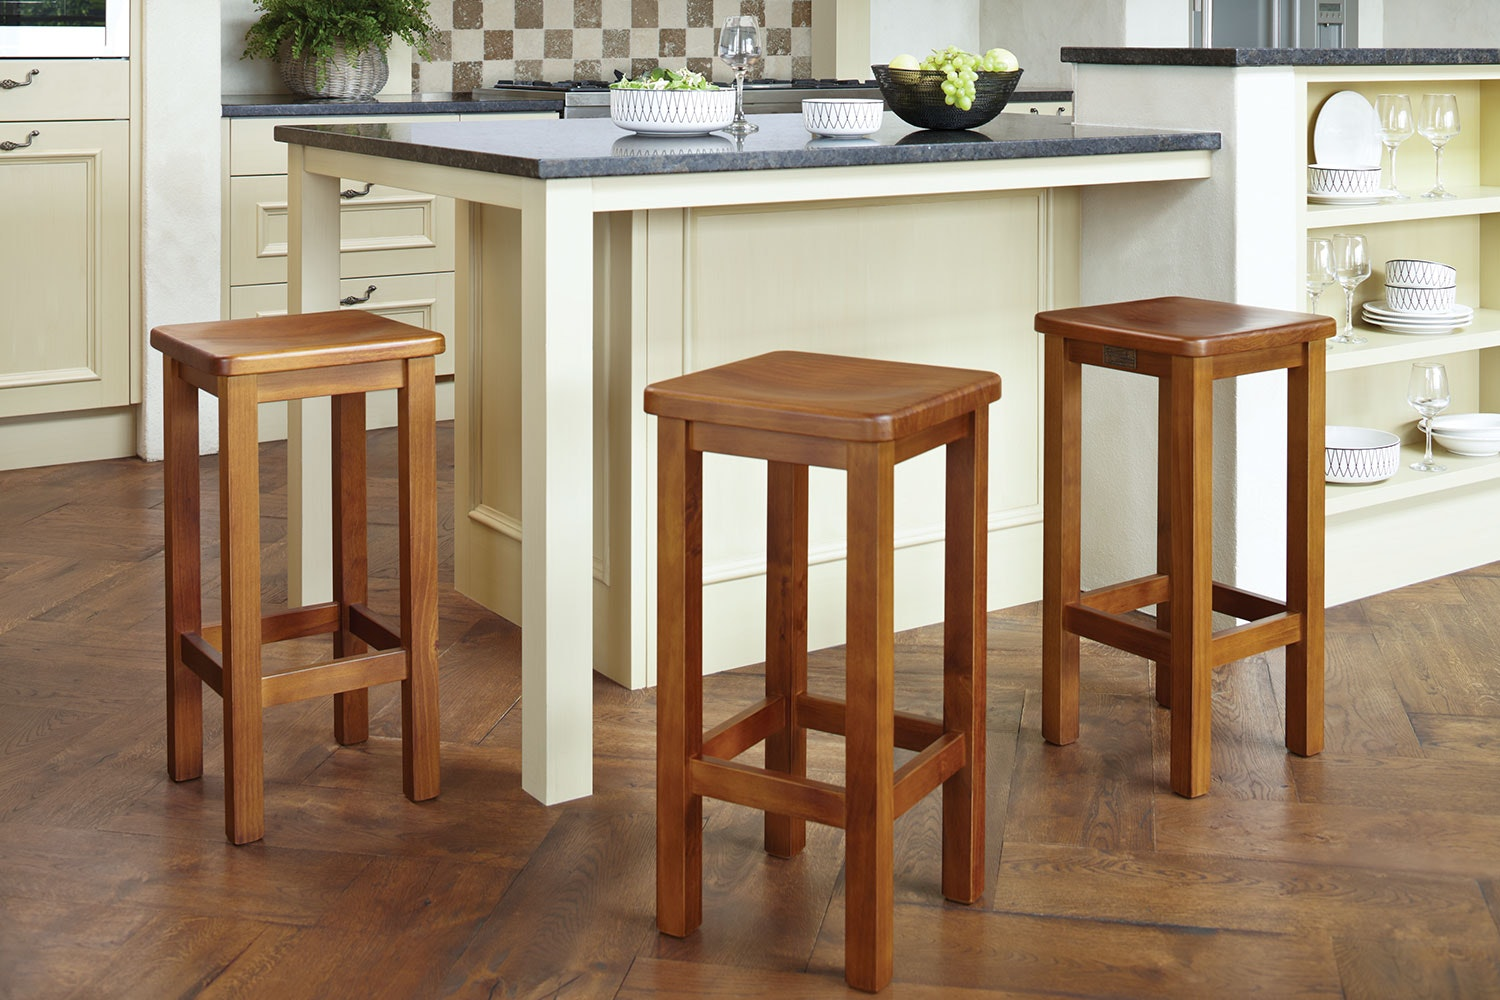 Marvelous Ferngrove Dish Seat Bar Stool By Coastwood Furniture